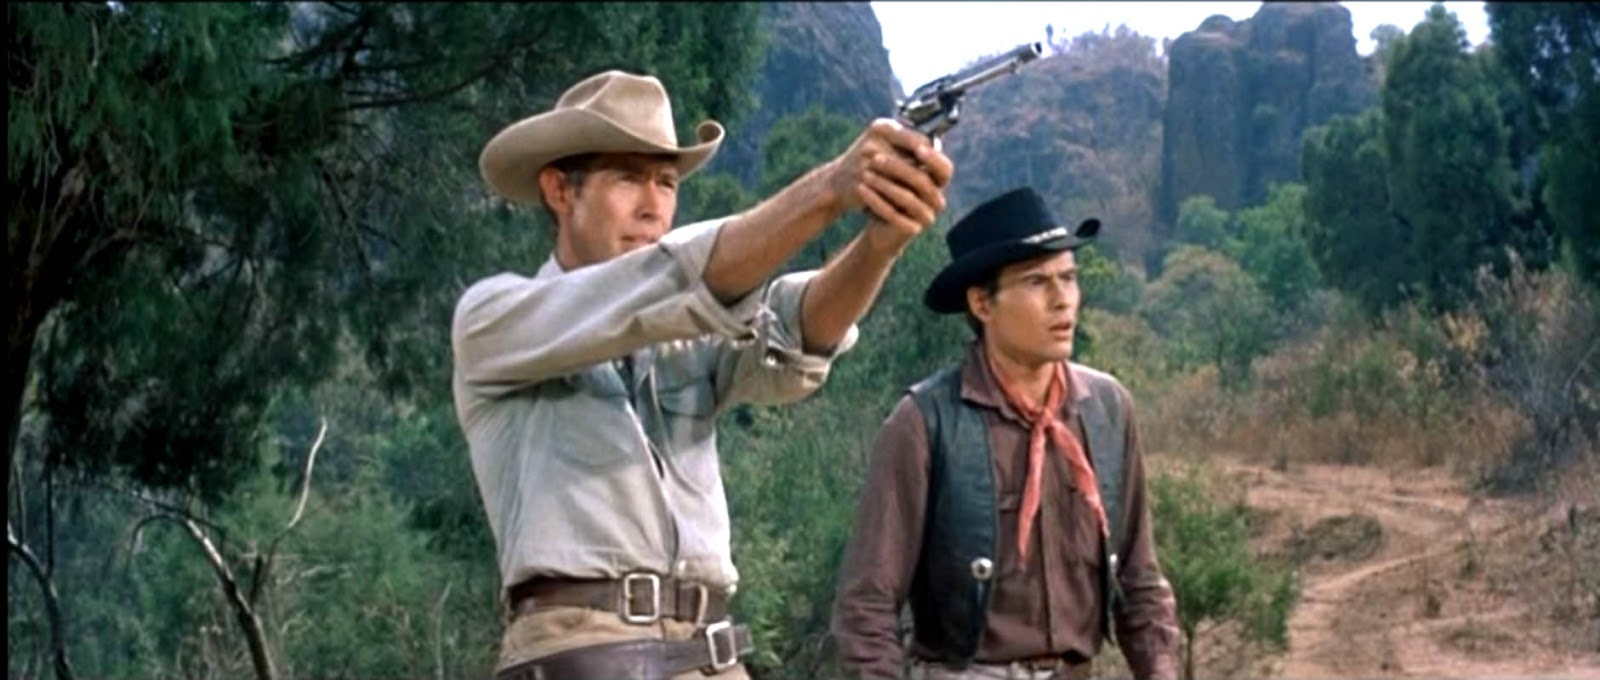 The making of 'The Magnificent Seven' (1960) ⋆ Historian ...